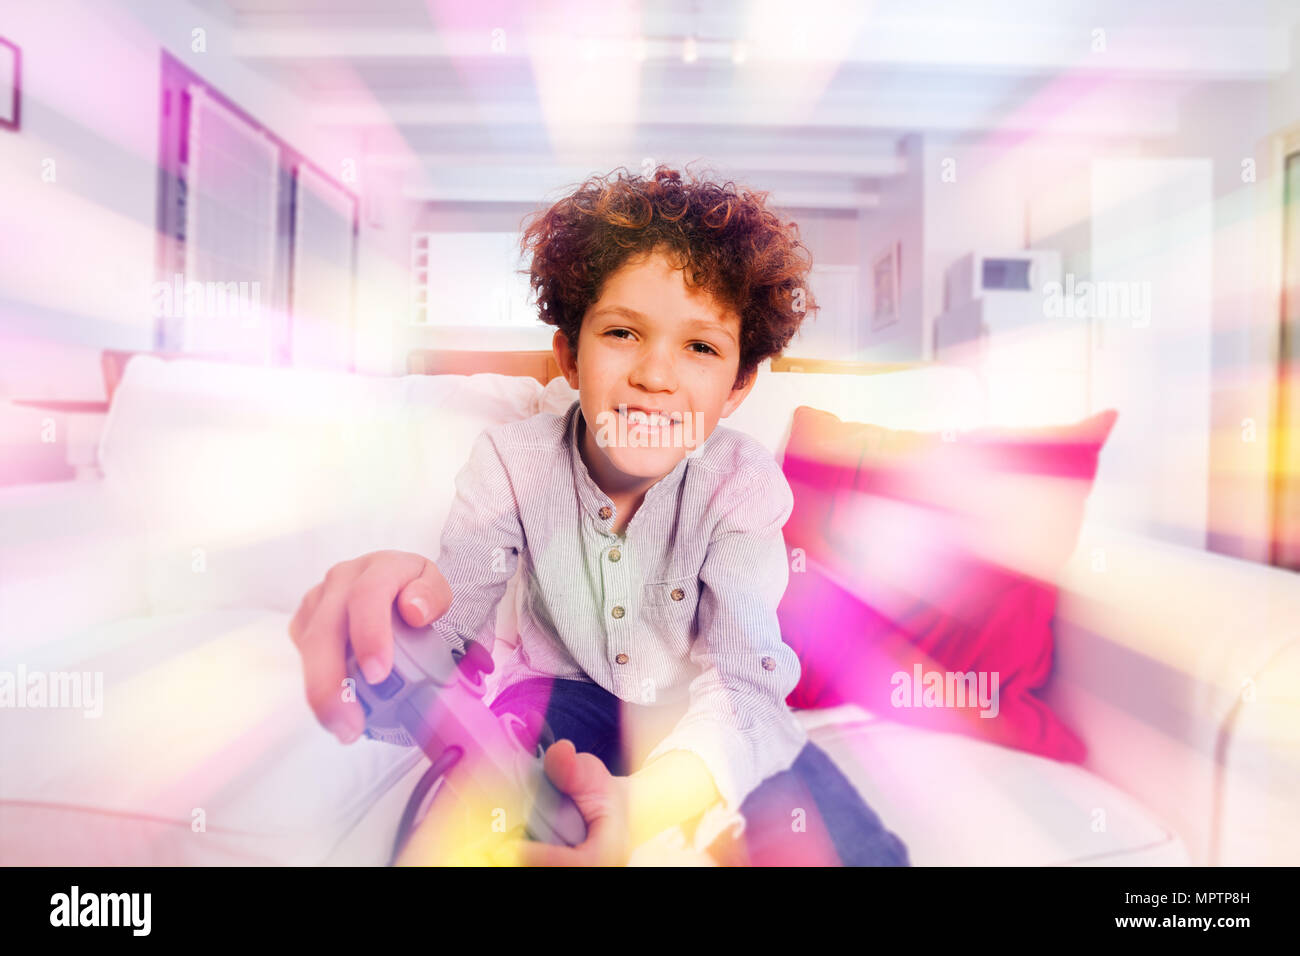 Portrait of preteen boy smiling and playing video games - Stock Image